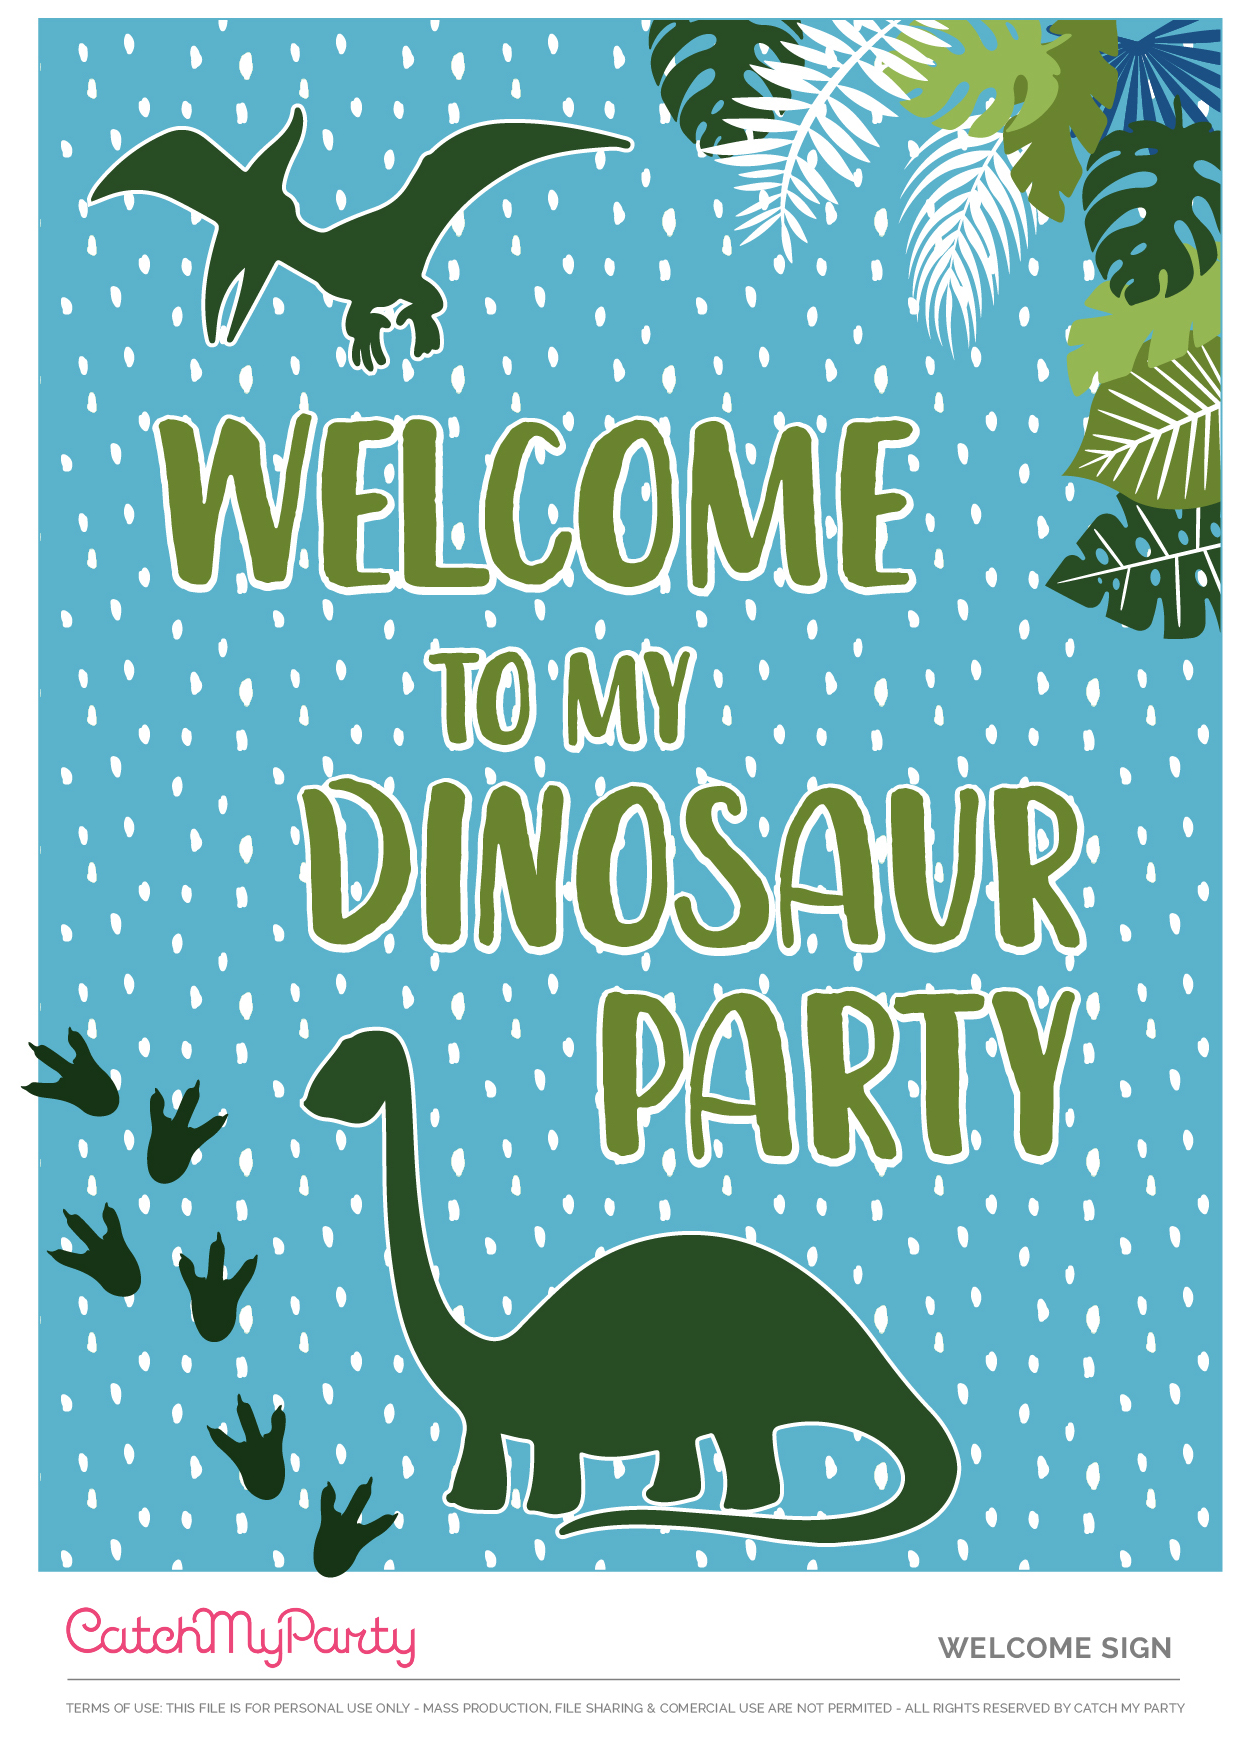 Download These Free Dinosaur Party Printables, Now - Welcome Poster